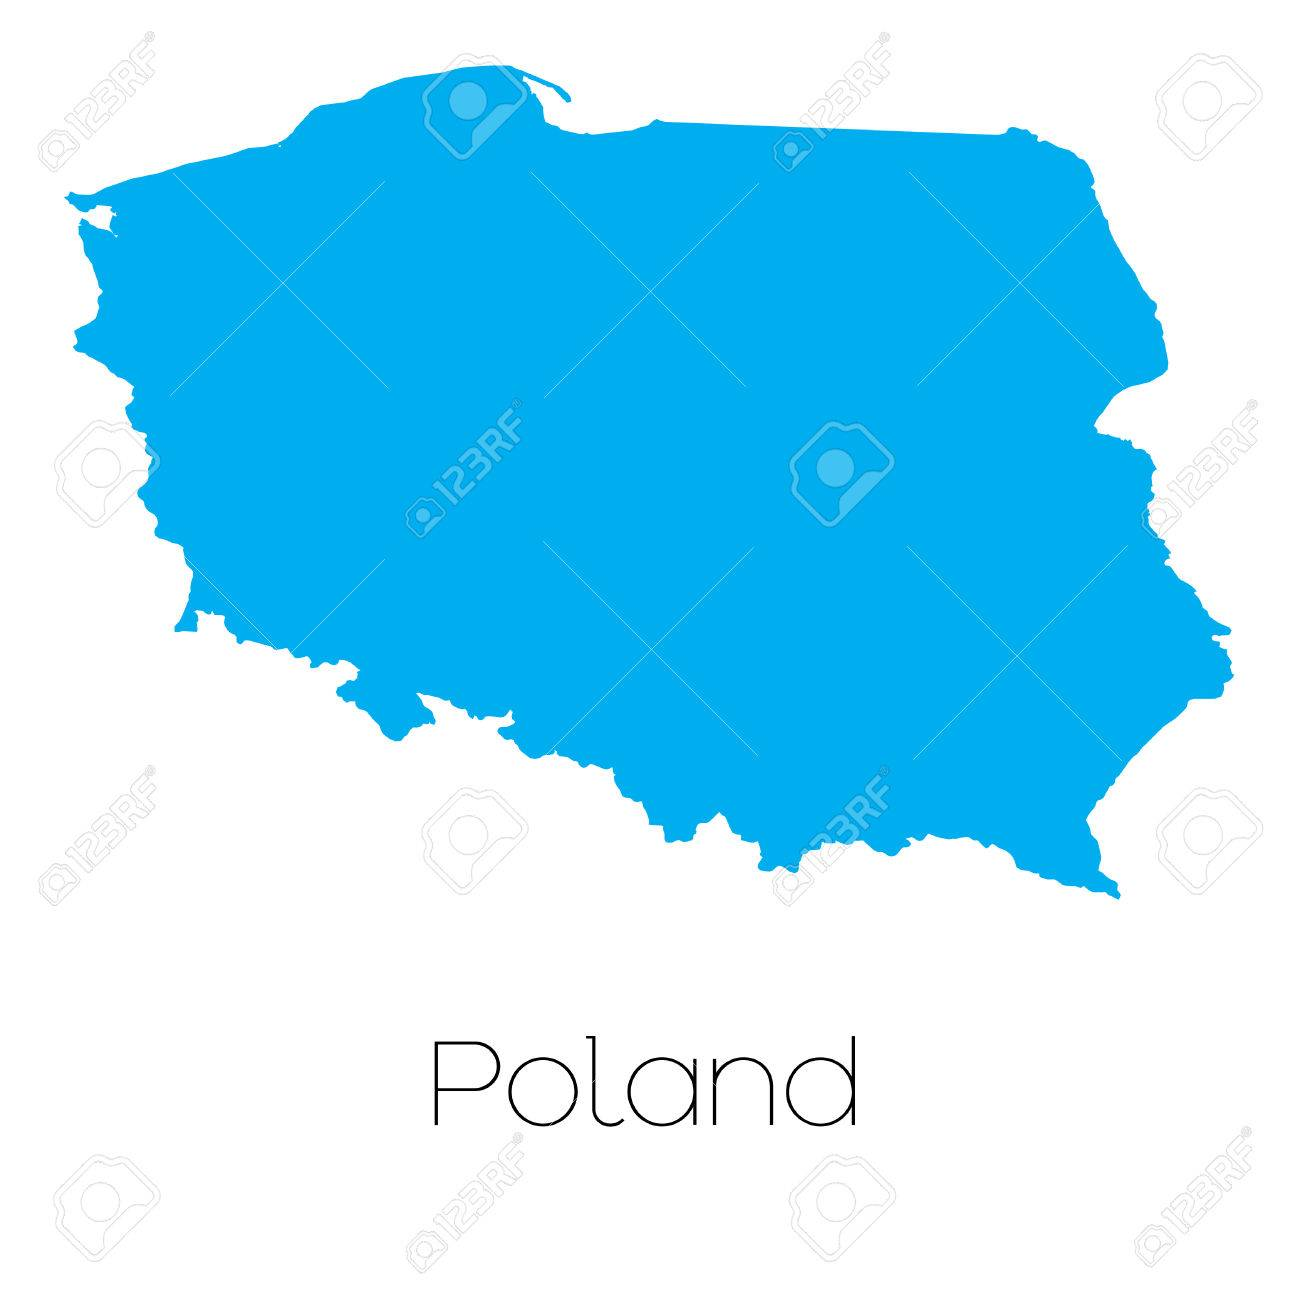 A Blue shape with name of the country of Poland Stock Vector - 45064020